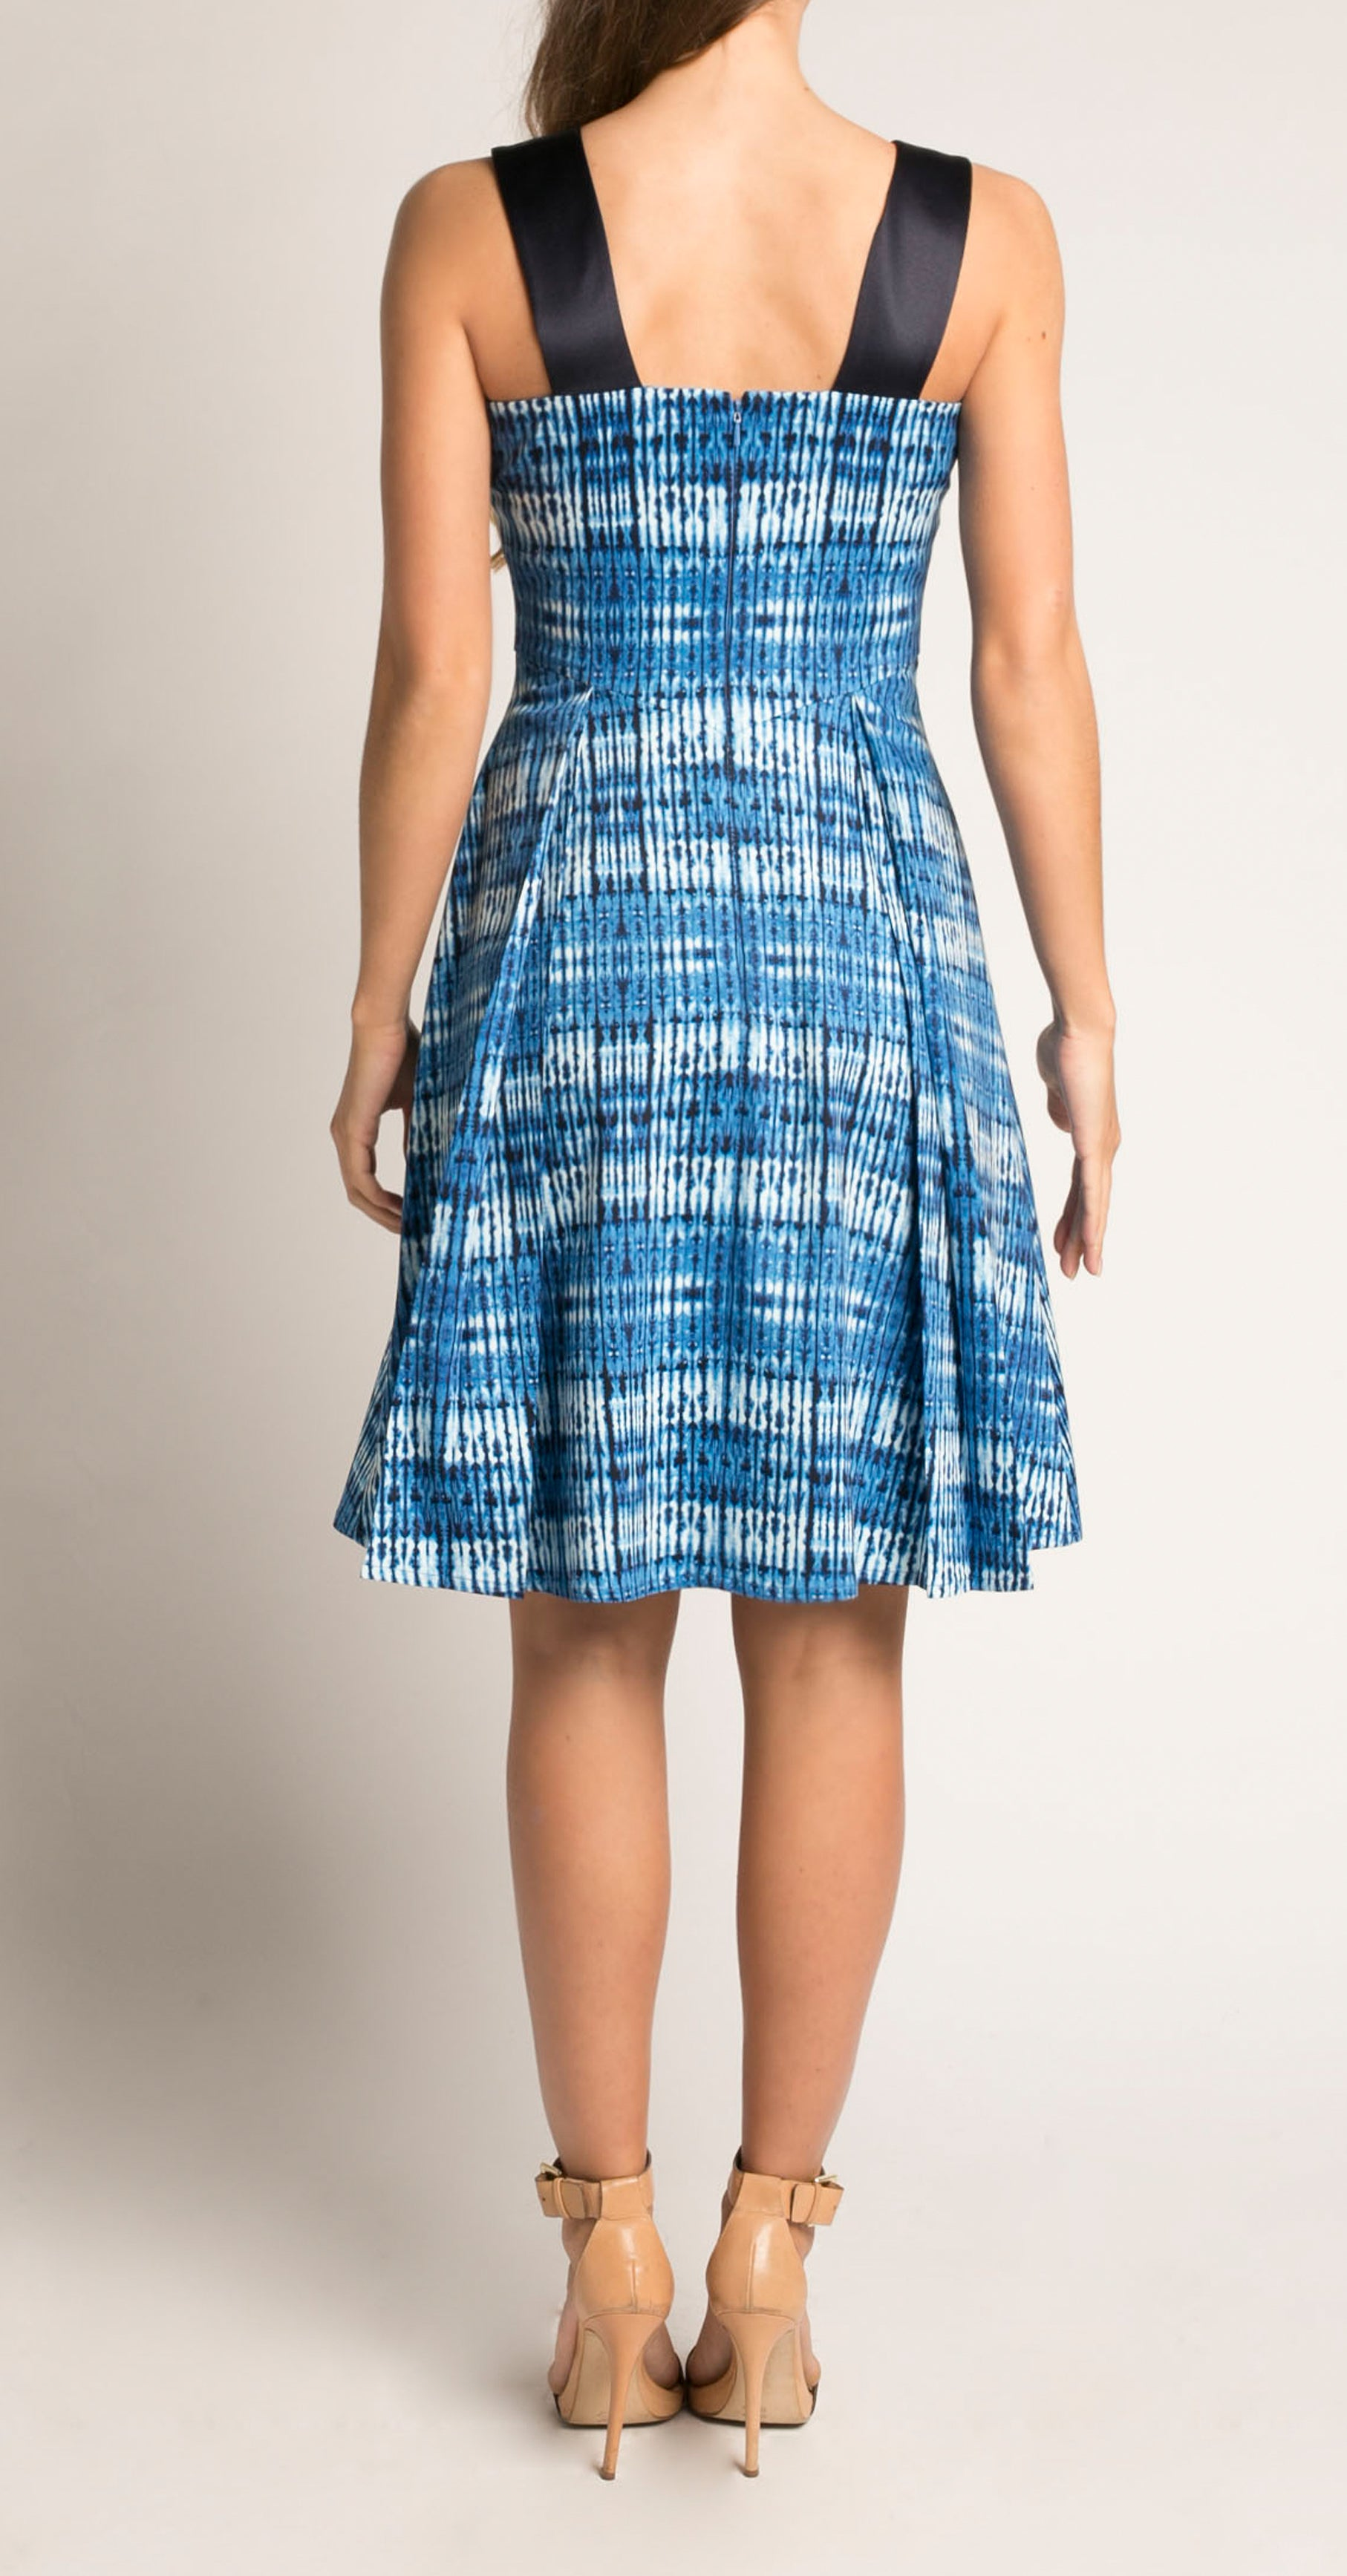 LAVAL DRESS DENIM HELIX PRINT